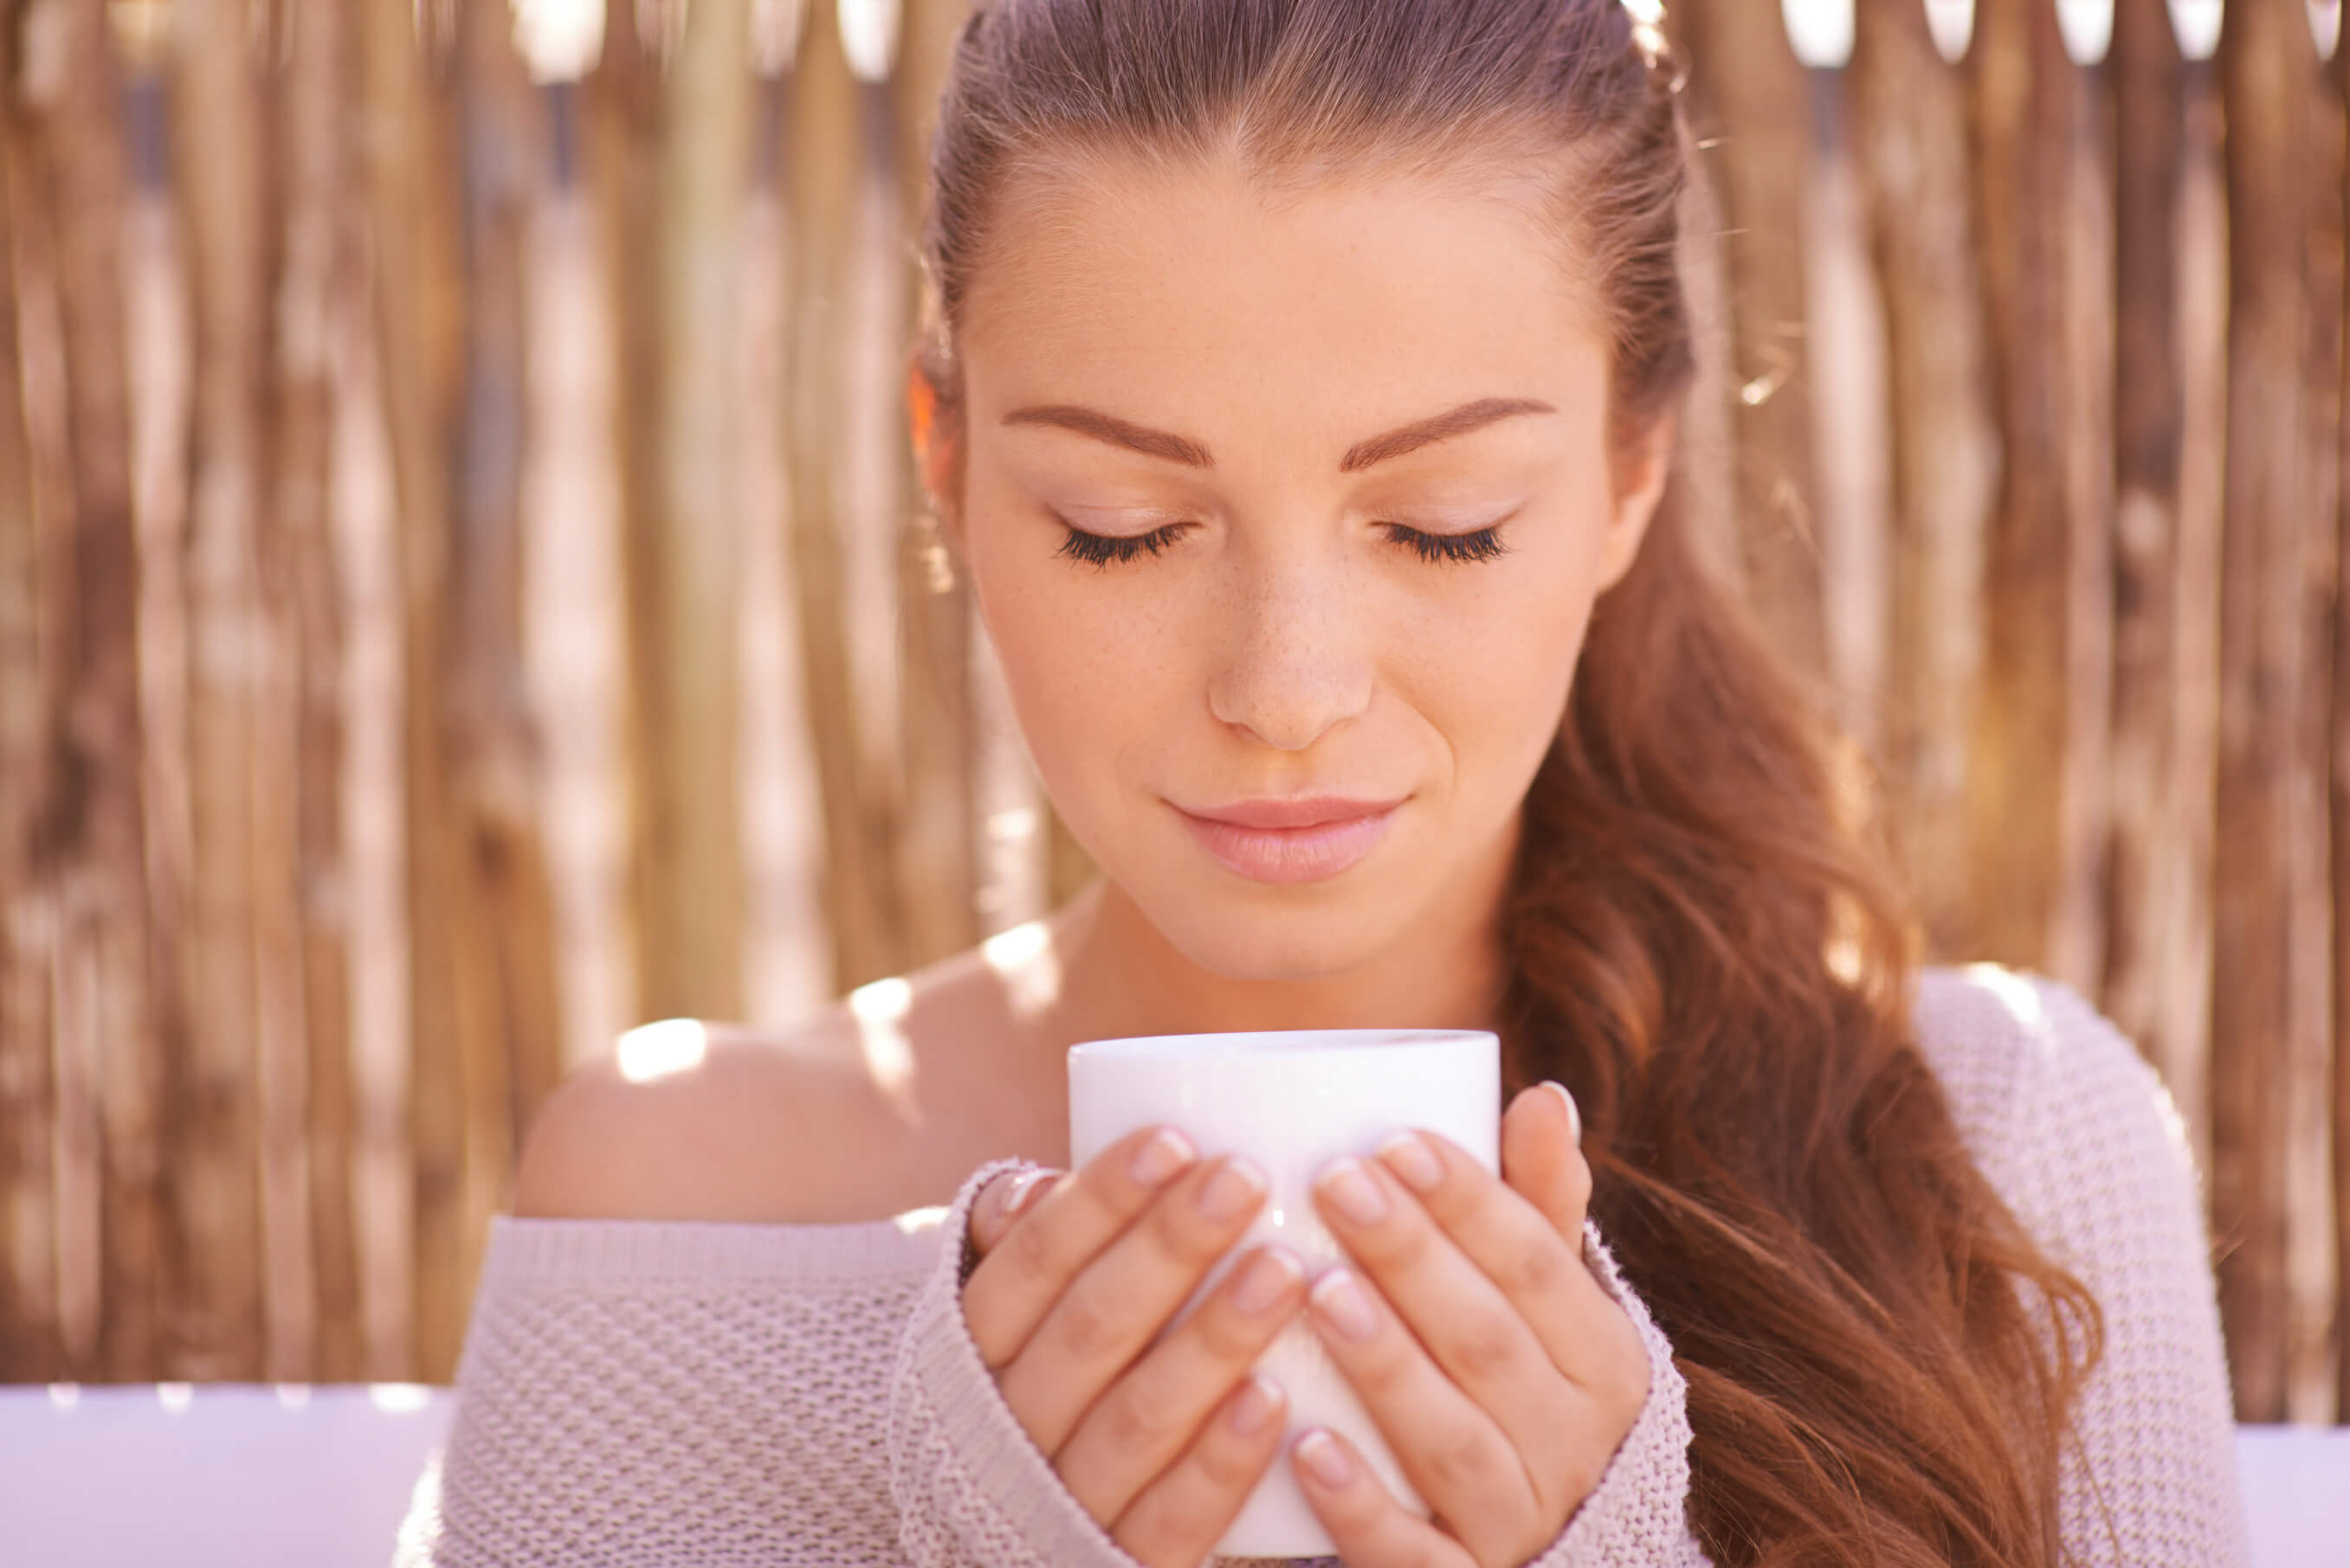 Closeup shot of a gorgeous young woman enjoying a warm drink outdoors